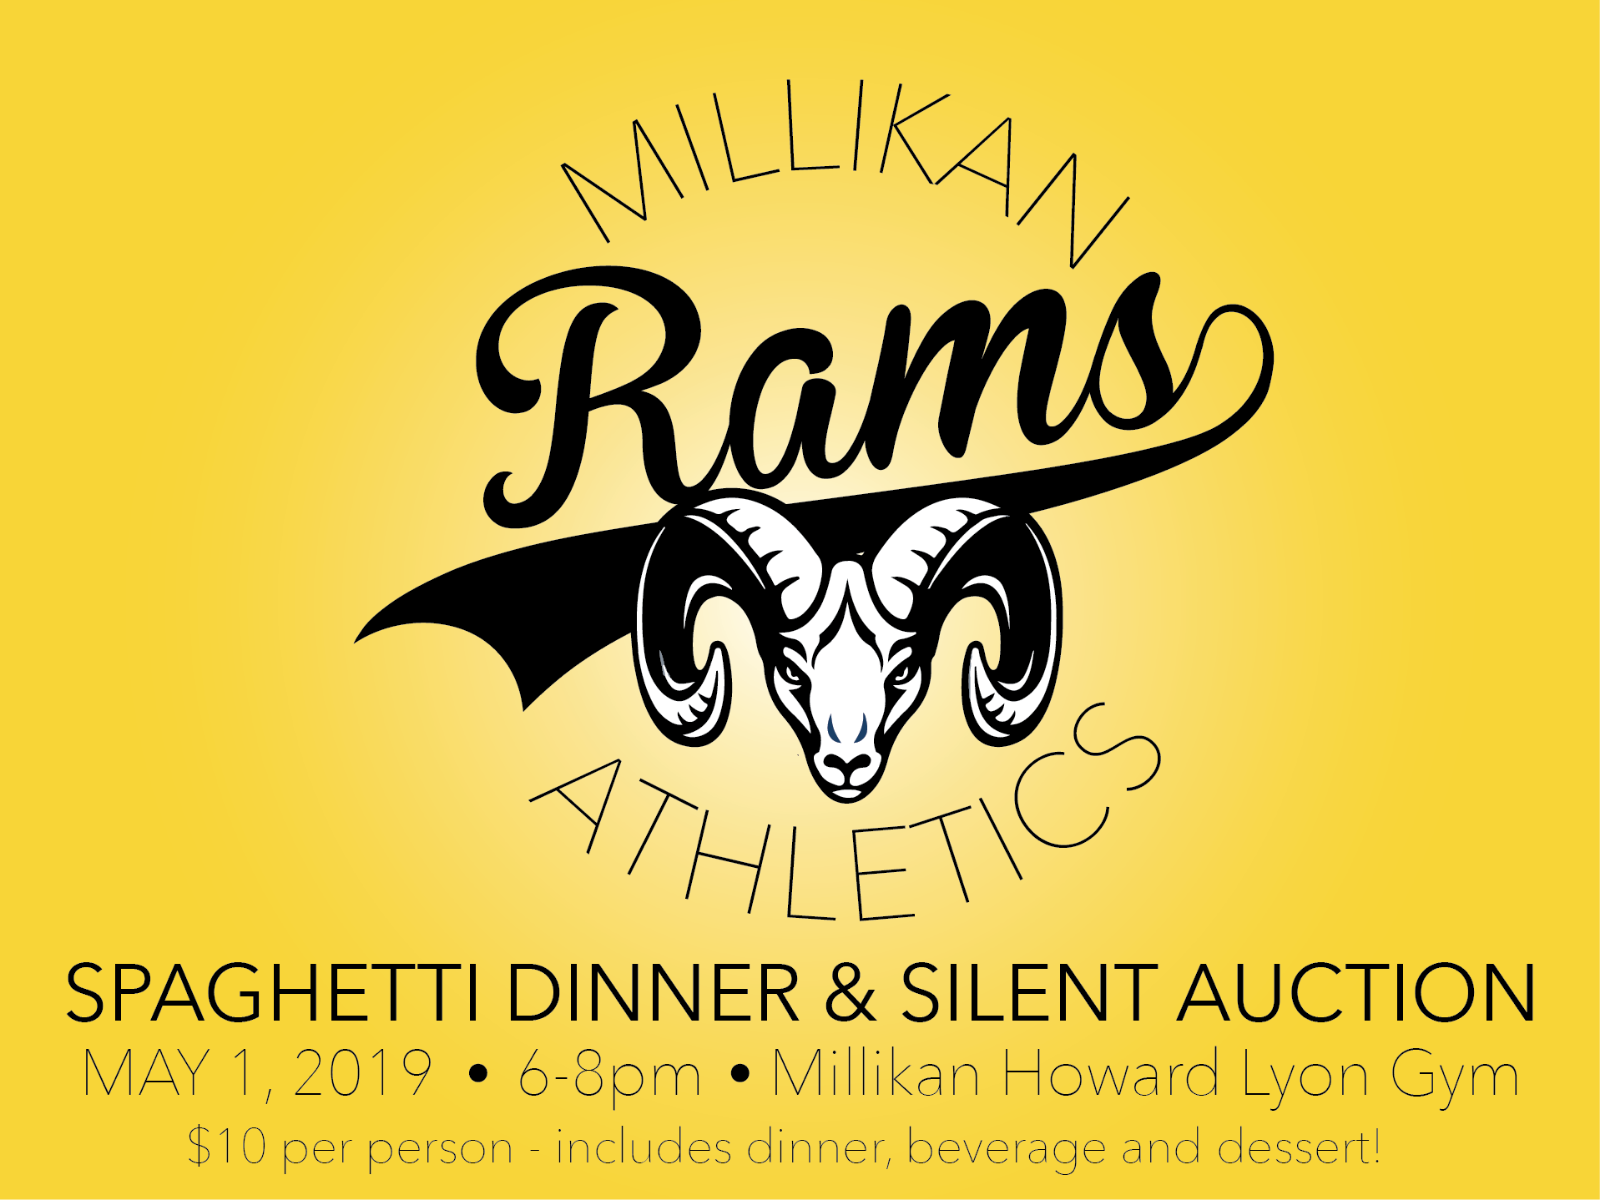 Annual Spaghetti Dinner and Silent Auction